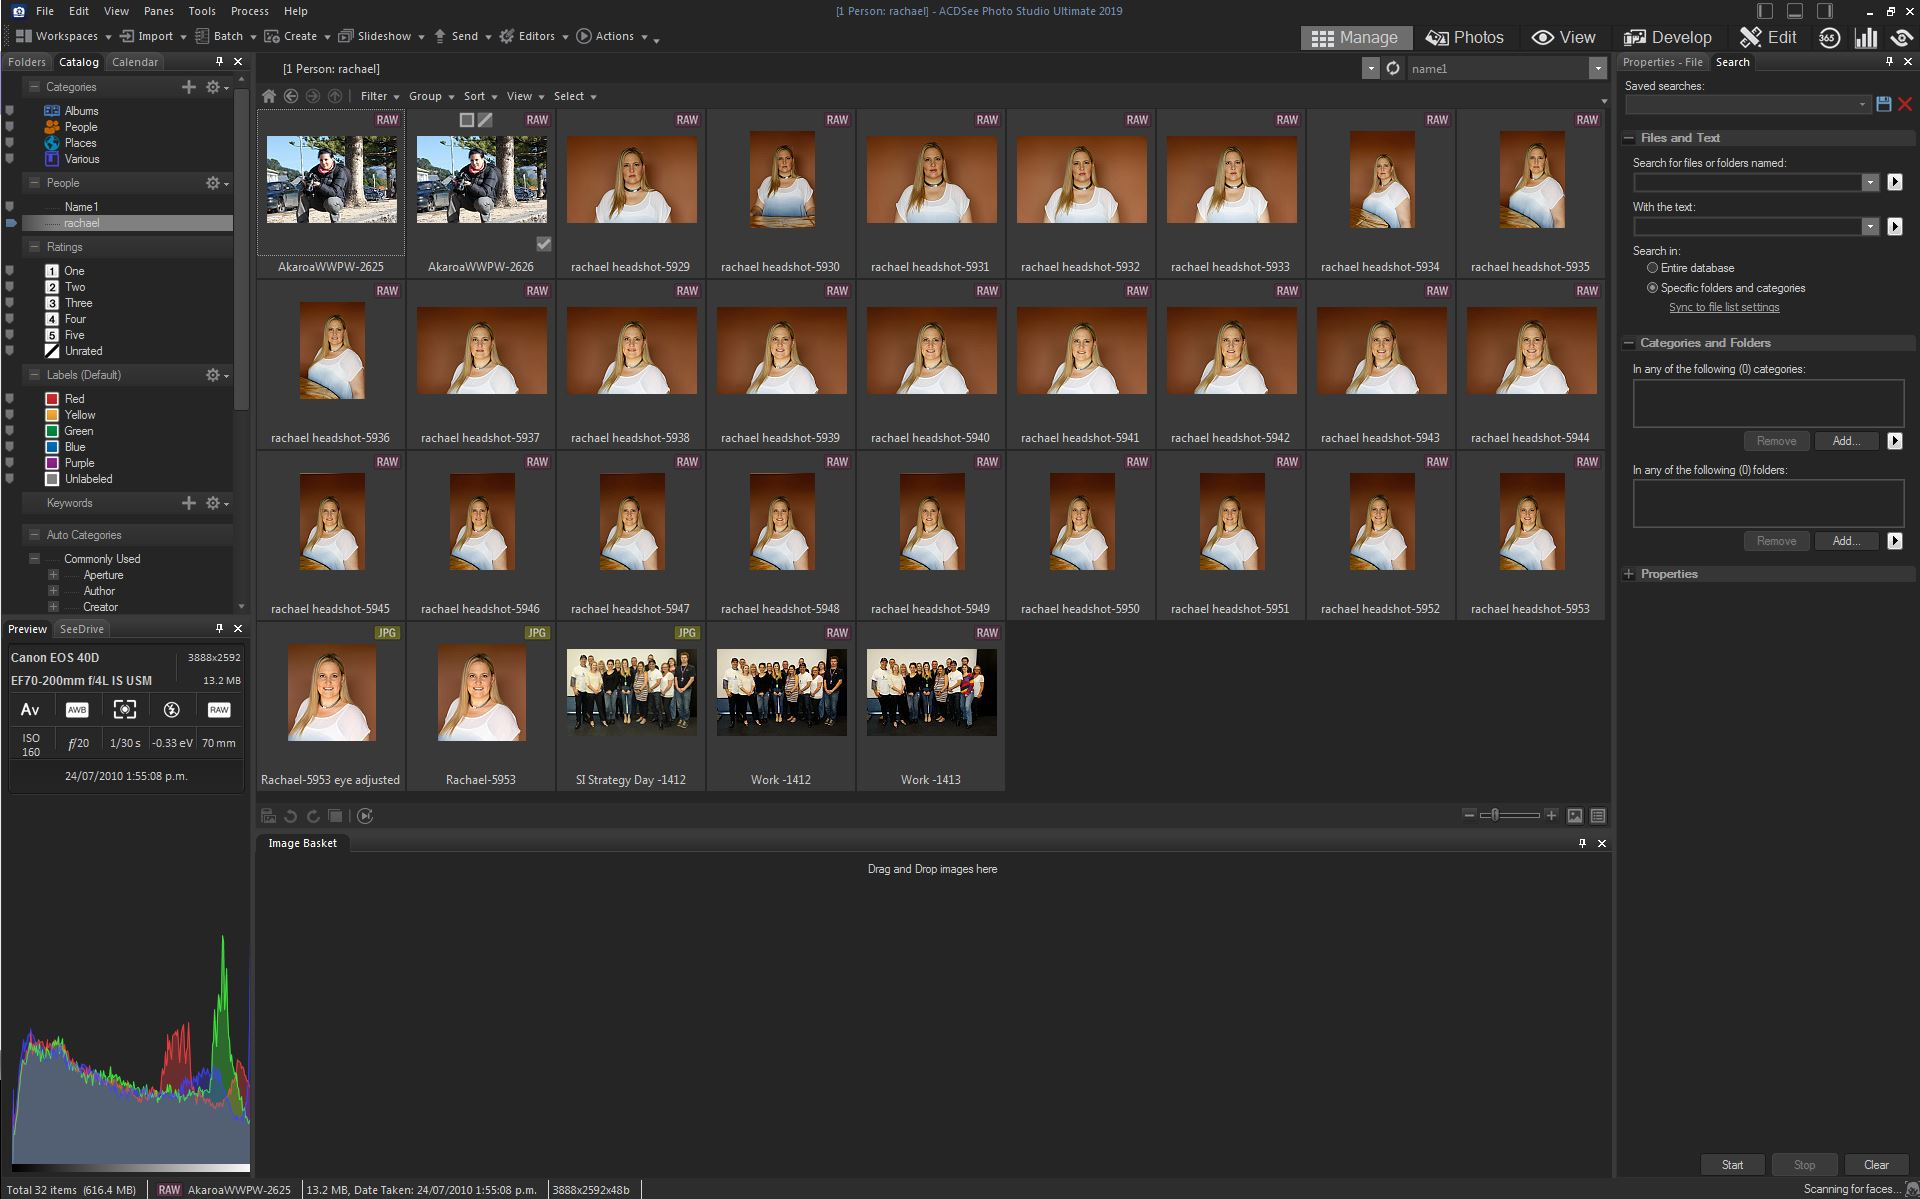 Using Face Detection and Recognition in ACDSee Photo Studio Ultimate 2019